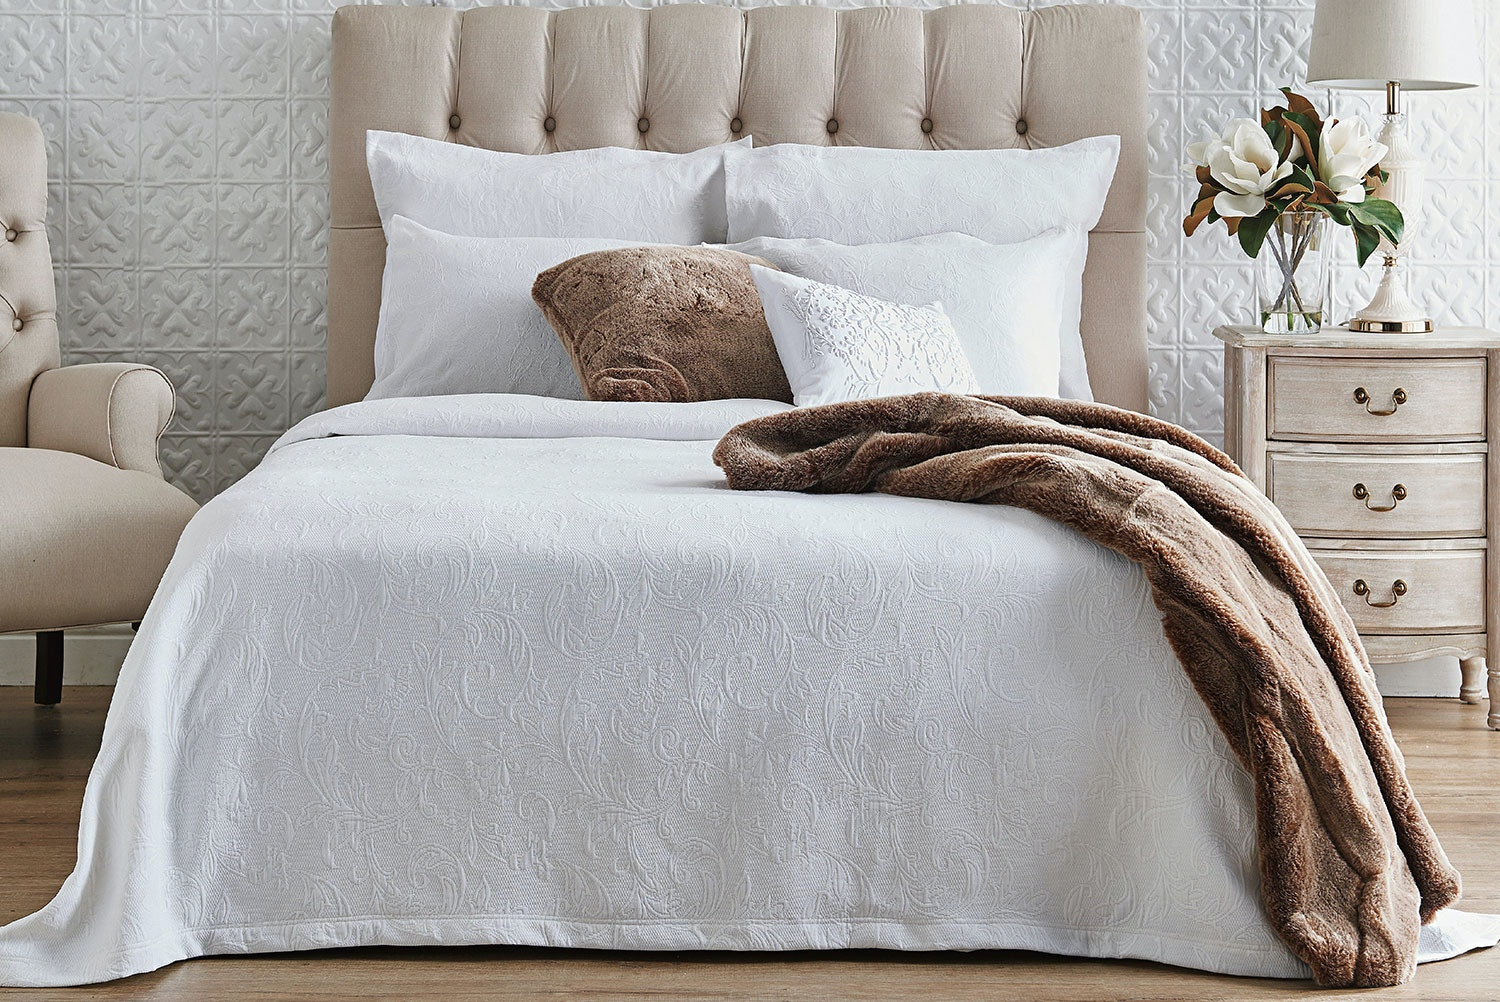 Antique Marcella Queen Bedspread by L'Avenue